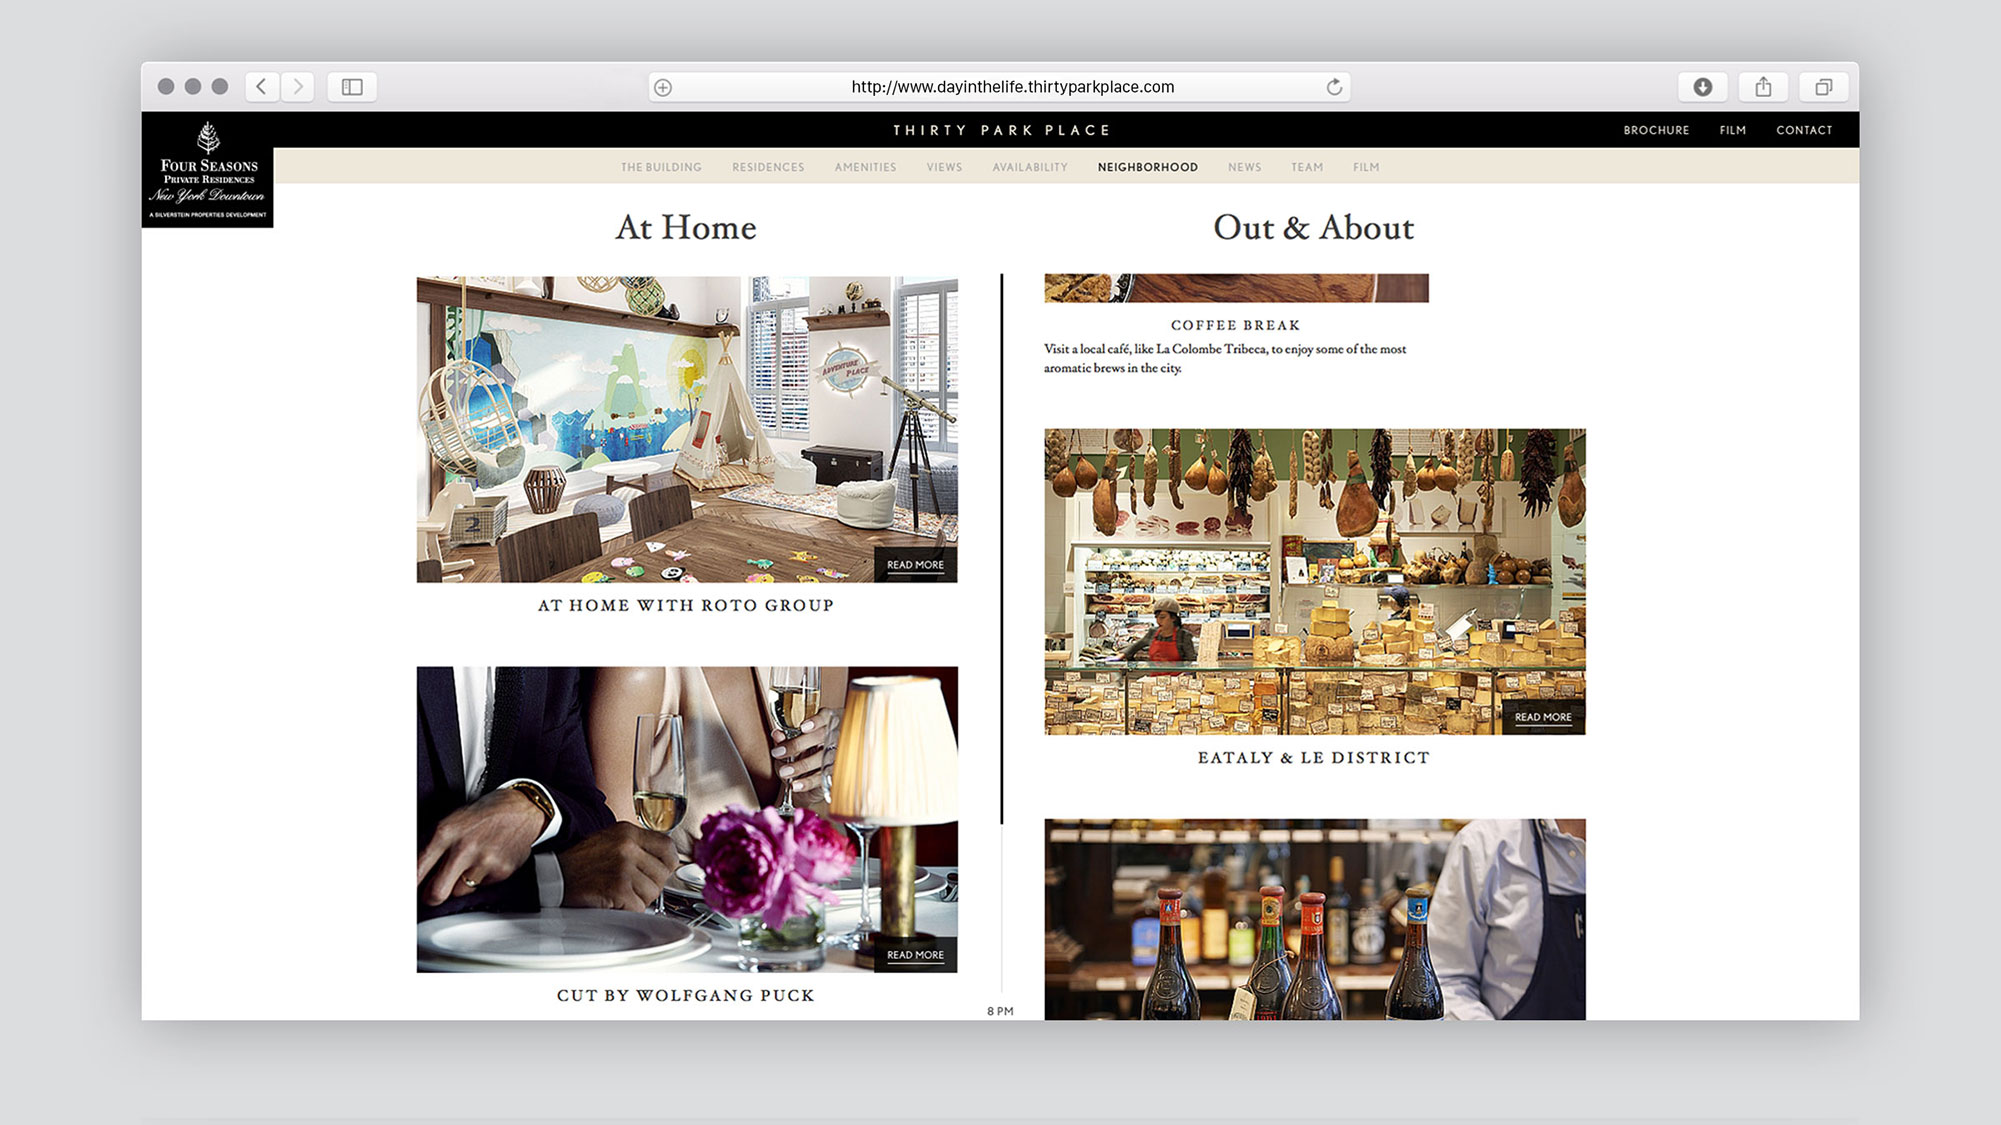 Web Design for 30 Park Place by The Four Seasons